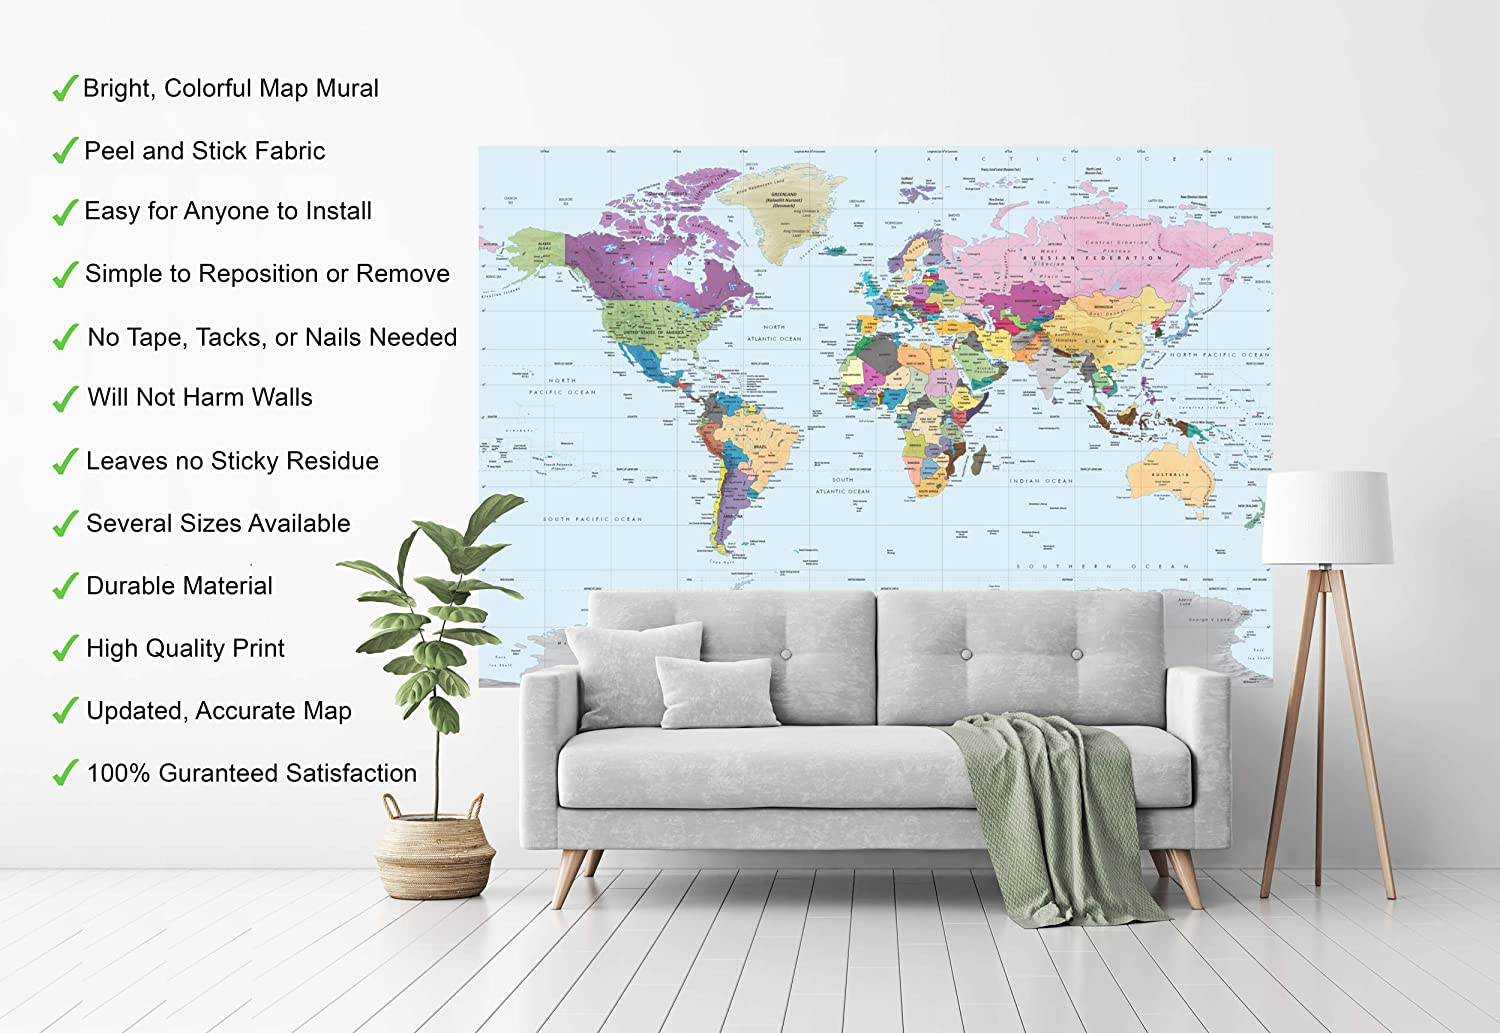 Country Capital Cities City Names Words Decal Wall Art Sticker Picture